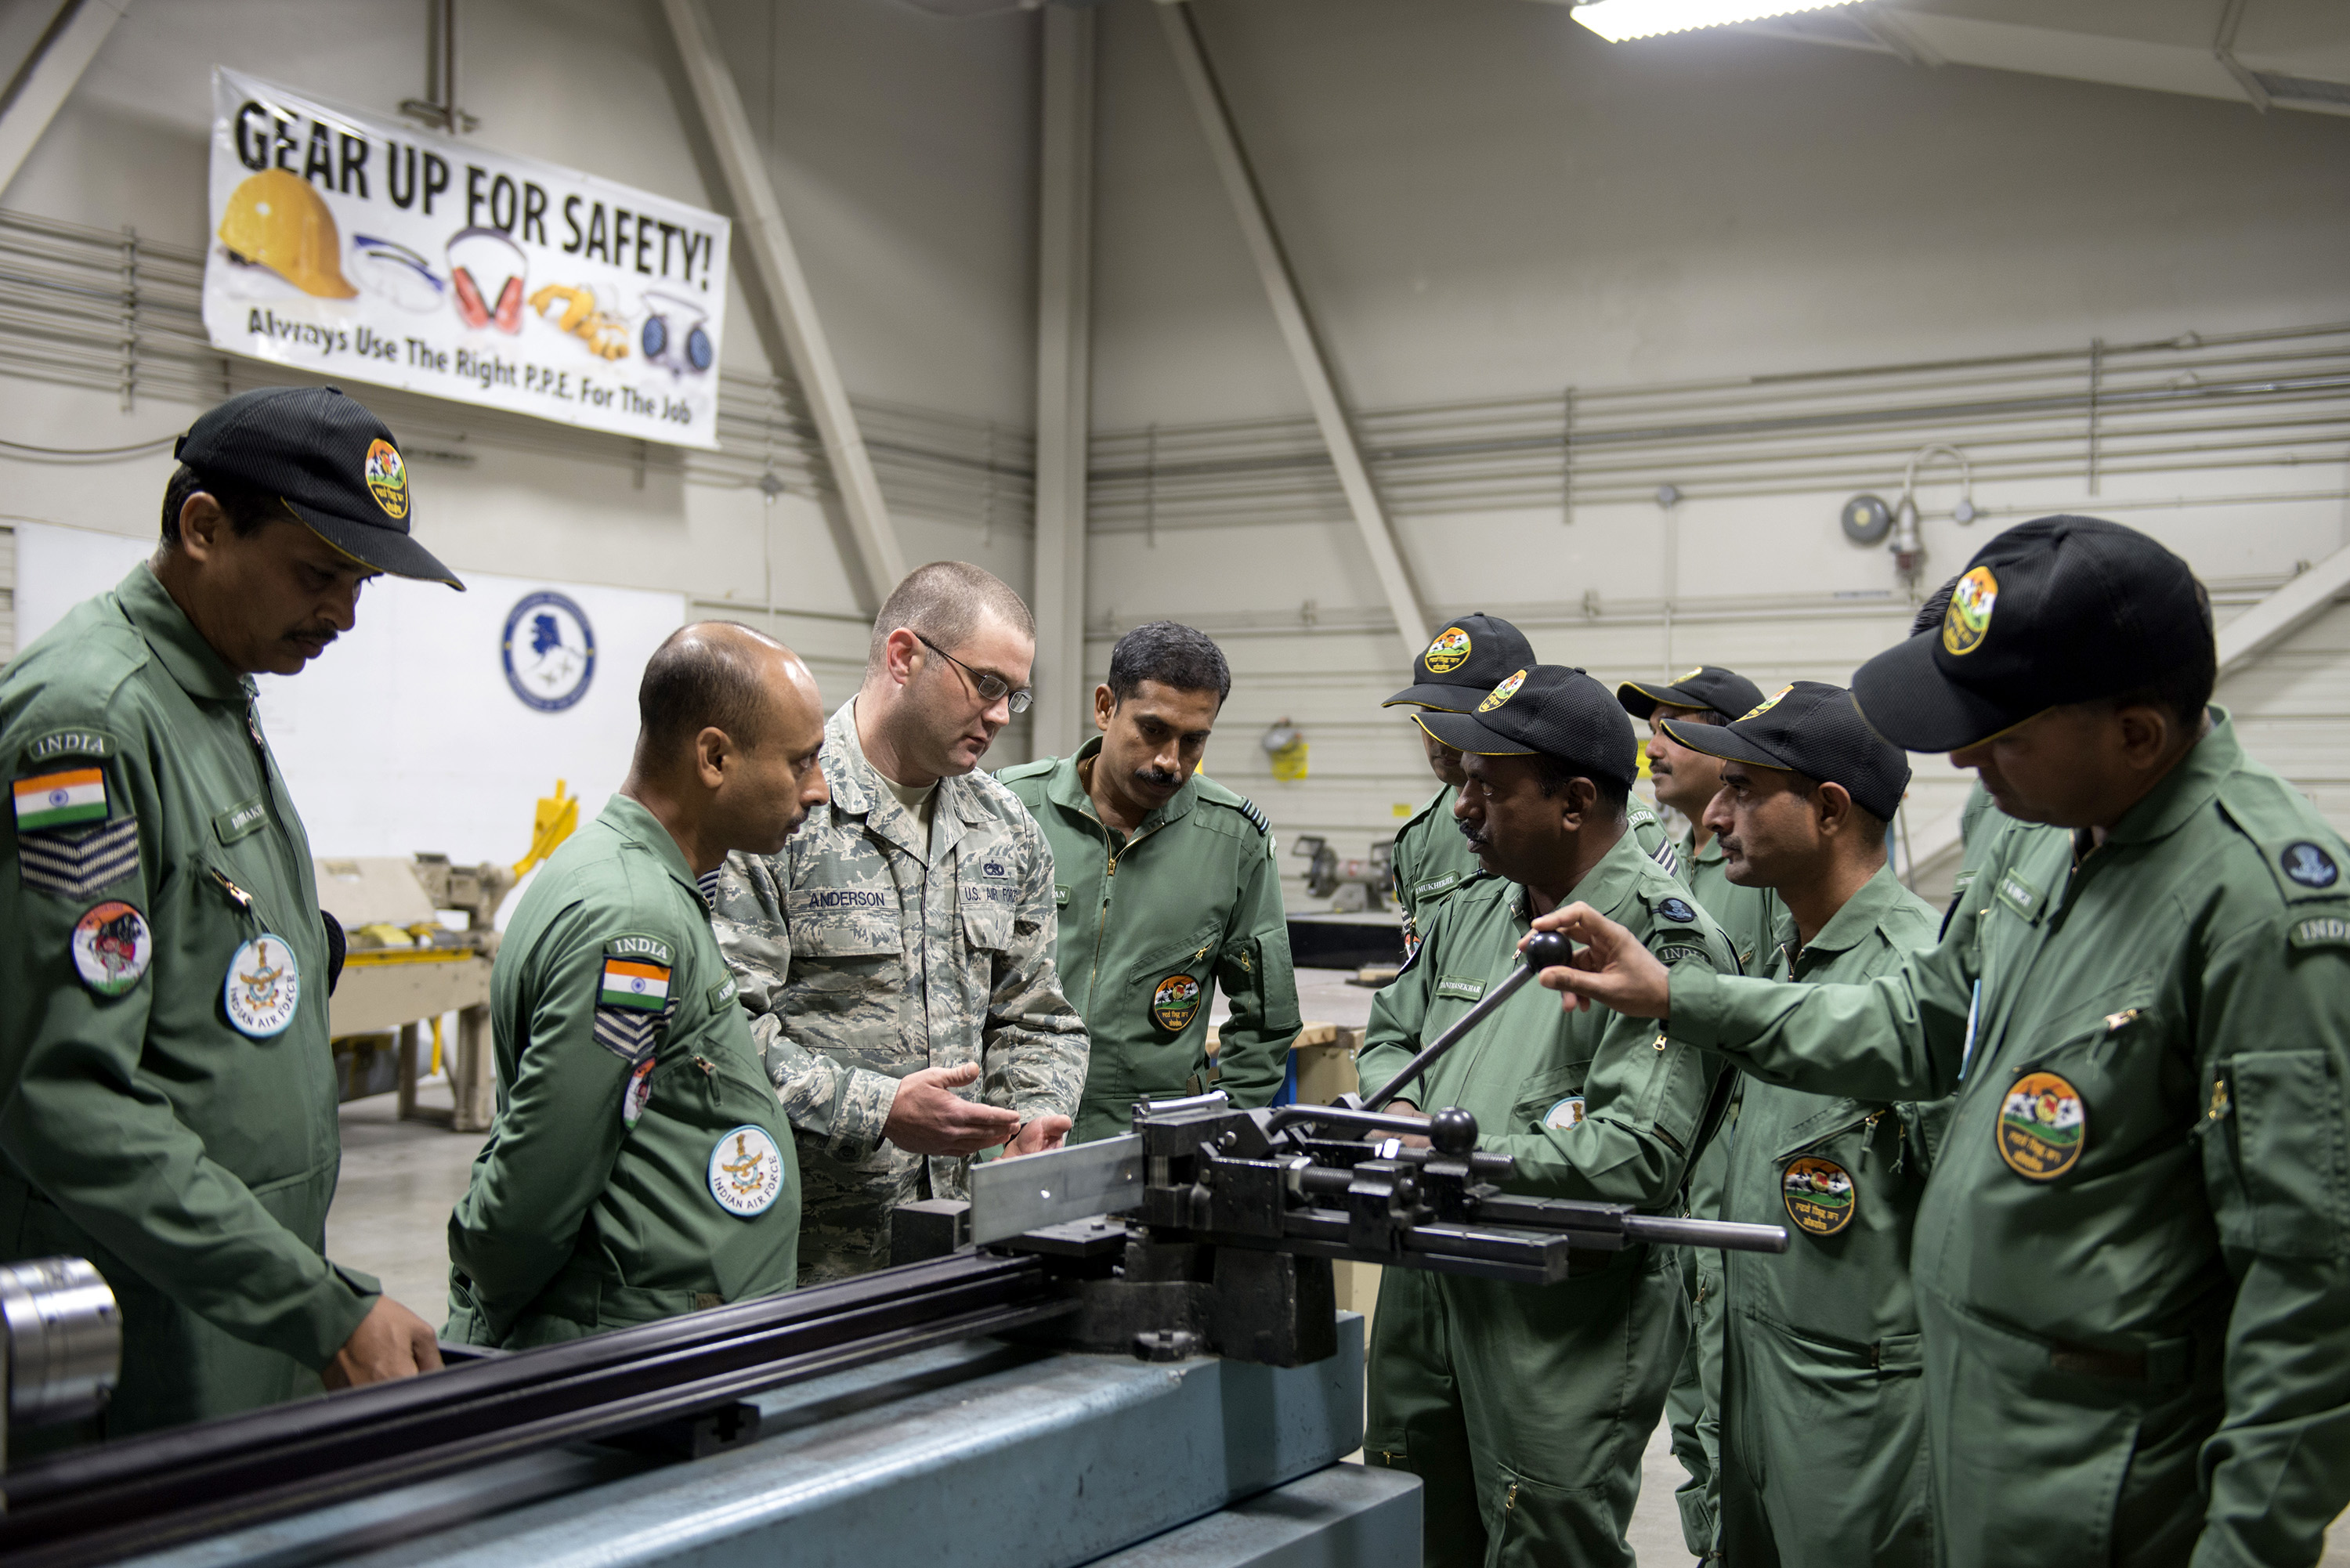 eielson afb hindu single women Welcome to eielson air force base eielson is located 23 miles south of  fairbanks in central alaska's fairbanks north star borough fairbanks is alaska's .